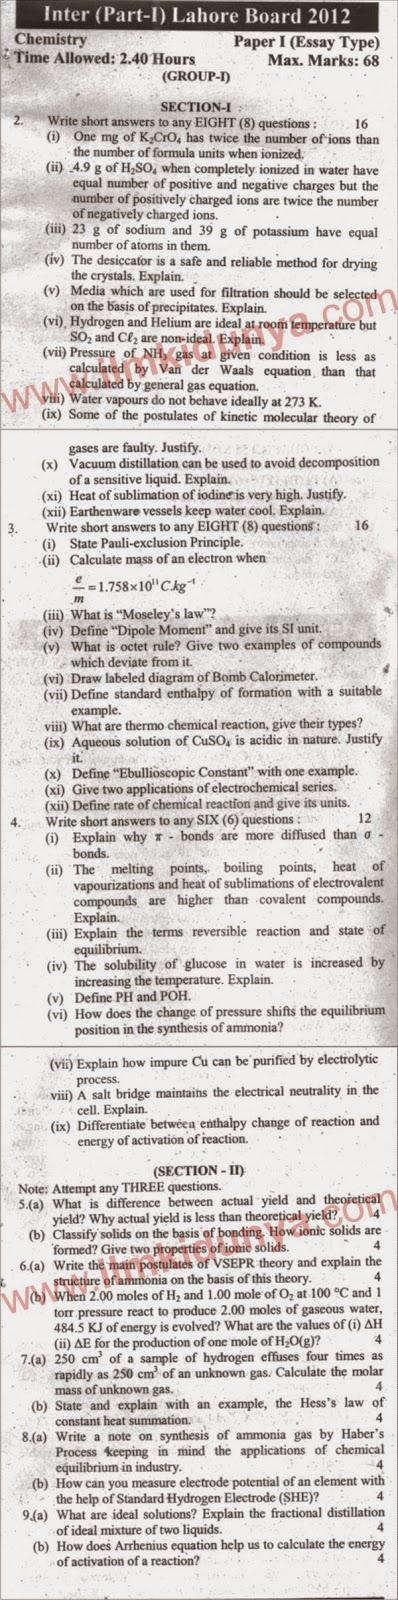 Lahore Board Chemistry Inter Part 1 Past Paper 2012 Subjective Group 1